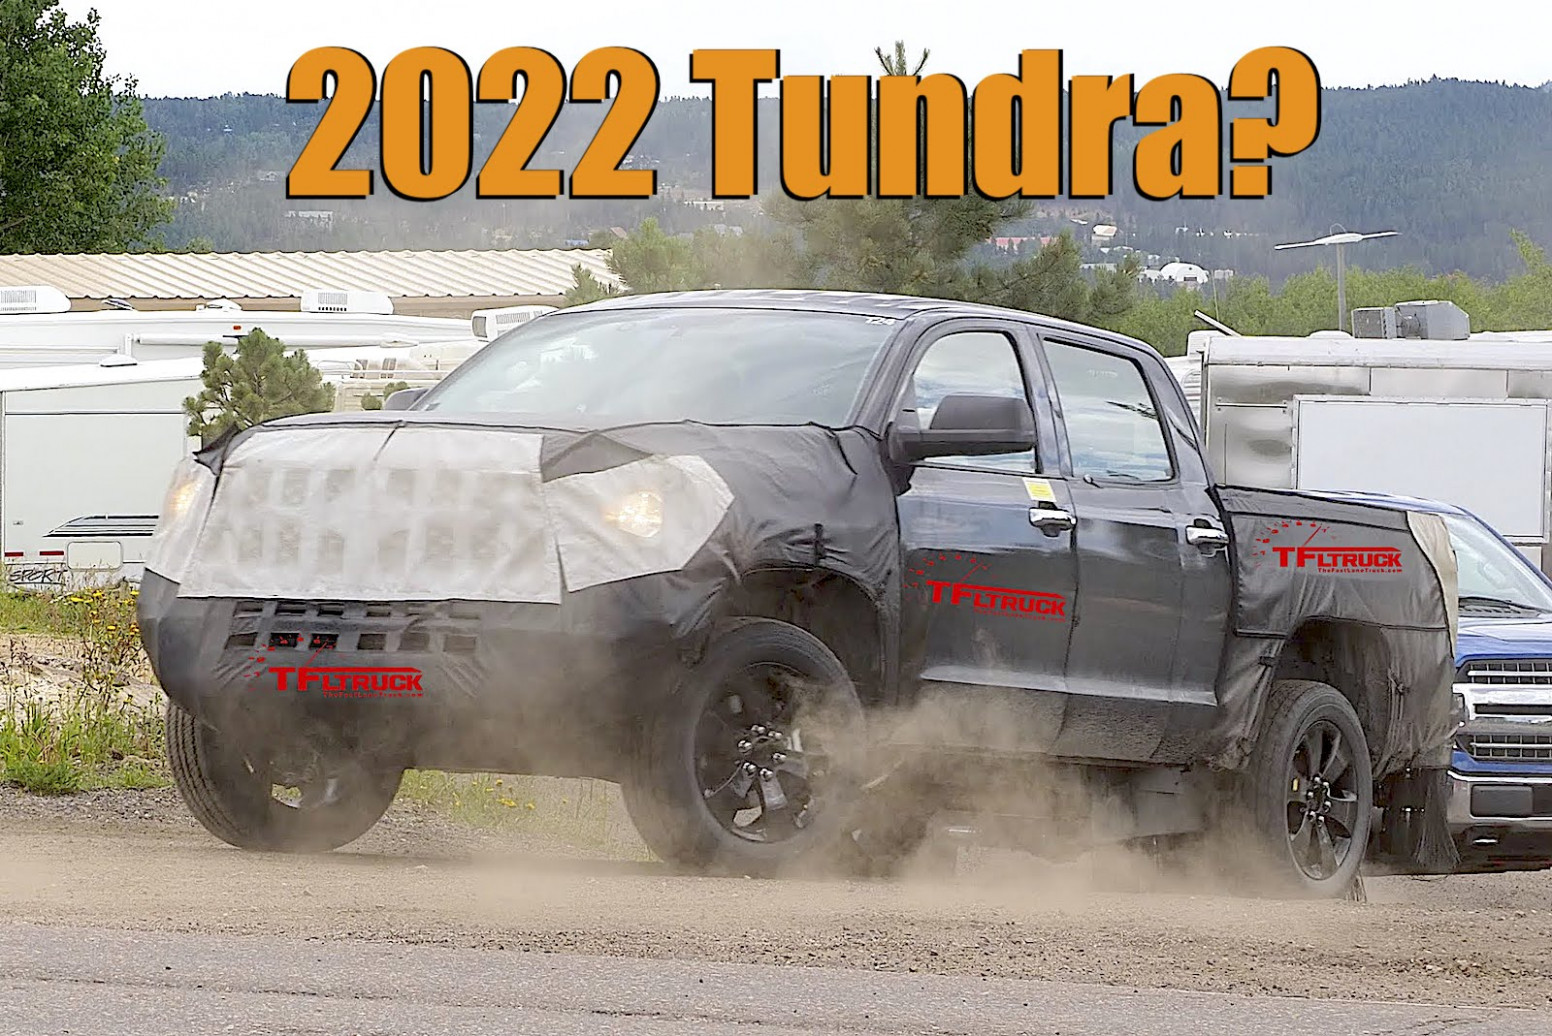 Pricing Toyota Dually 2022